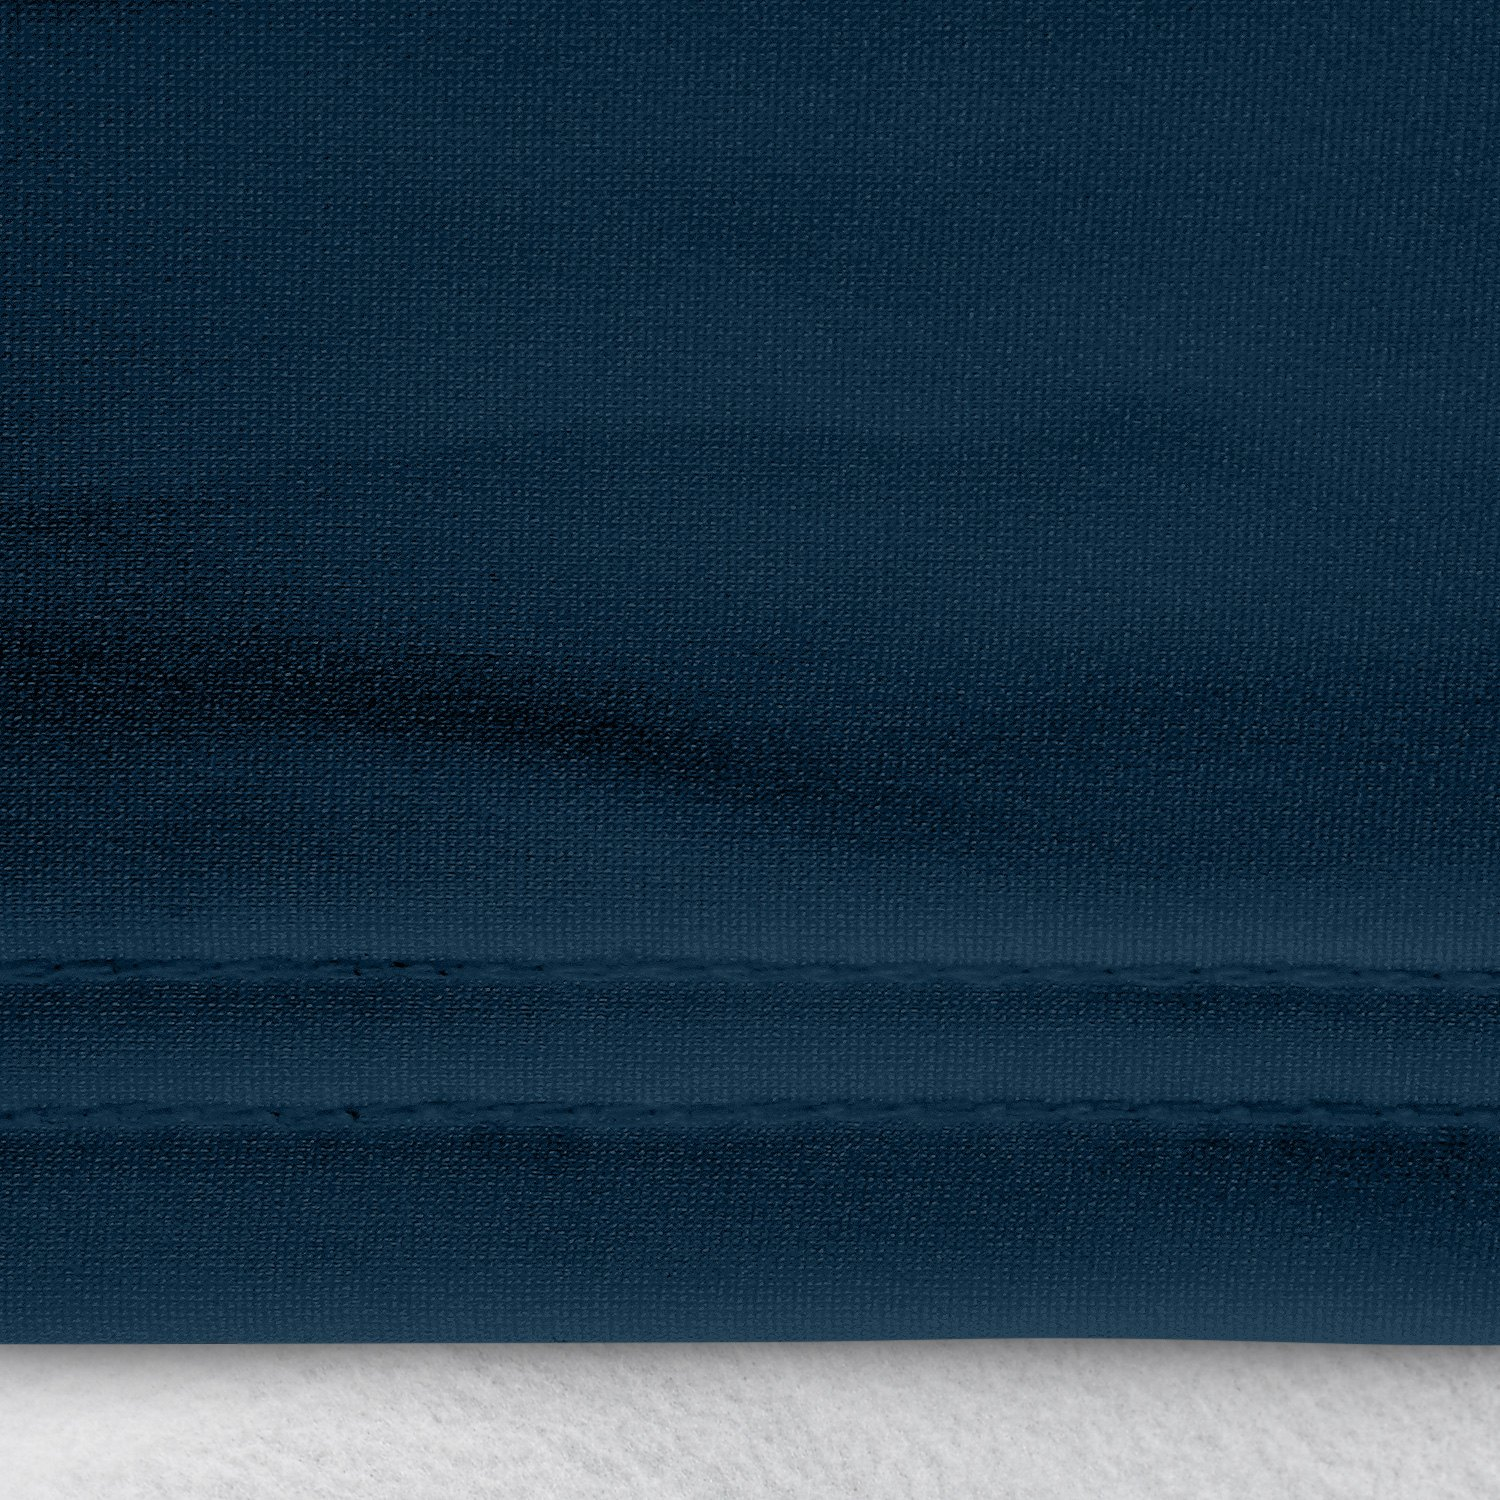 satin stretch navy blue car cover double stitching